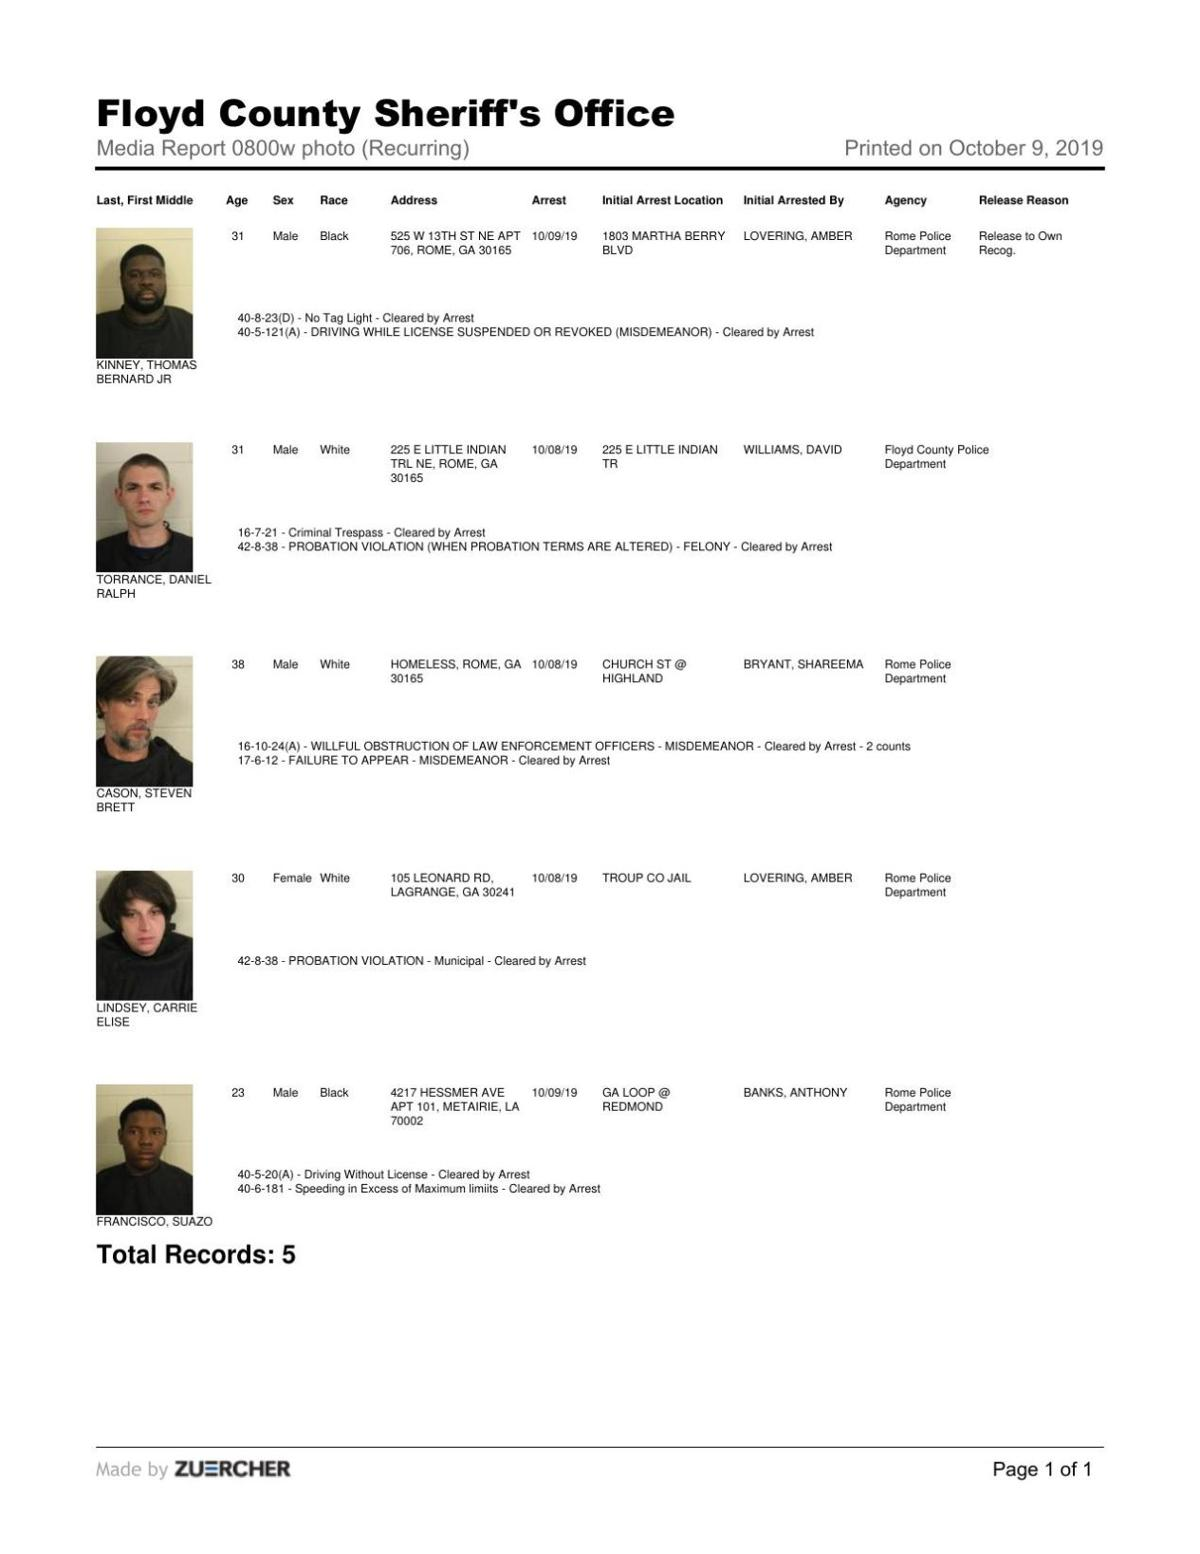 Floyd County jail report for Wednesday, Oct. 9